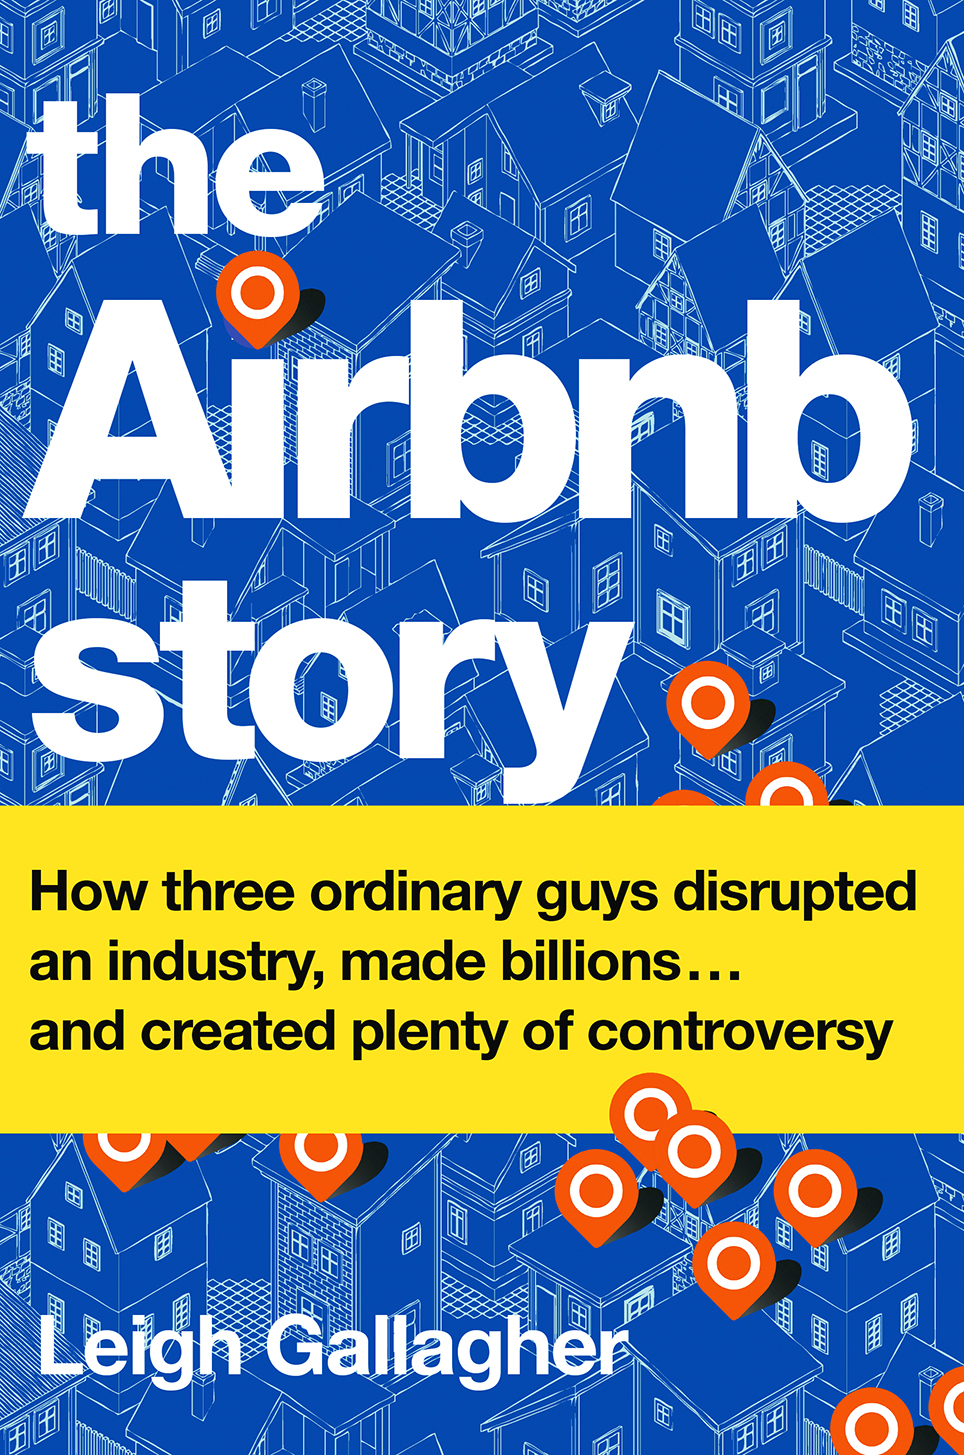 Excerpted from The Airbnb Story: How Three Ordinary Guys Disrupted an Industry, Made Billions...and Created Plenty of Controversy, by Leigh Gallagher, to be published on Feb. 14, 2017, by Houghton Mifflin Harcourt. Copyright ©2017. Used by permission.